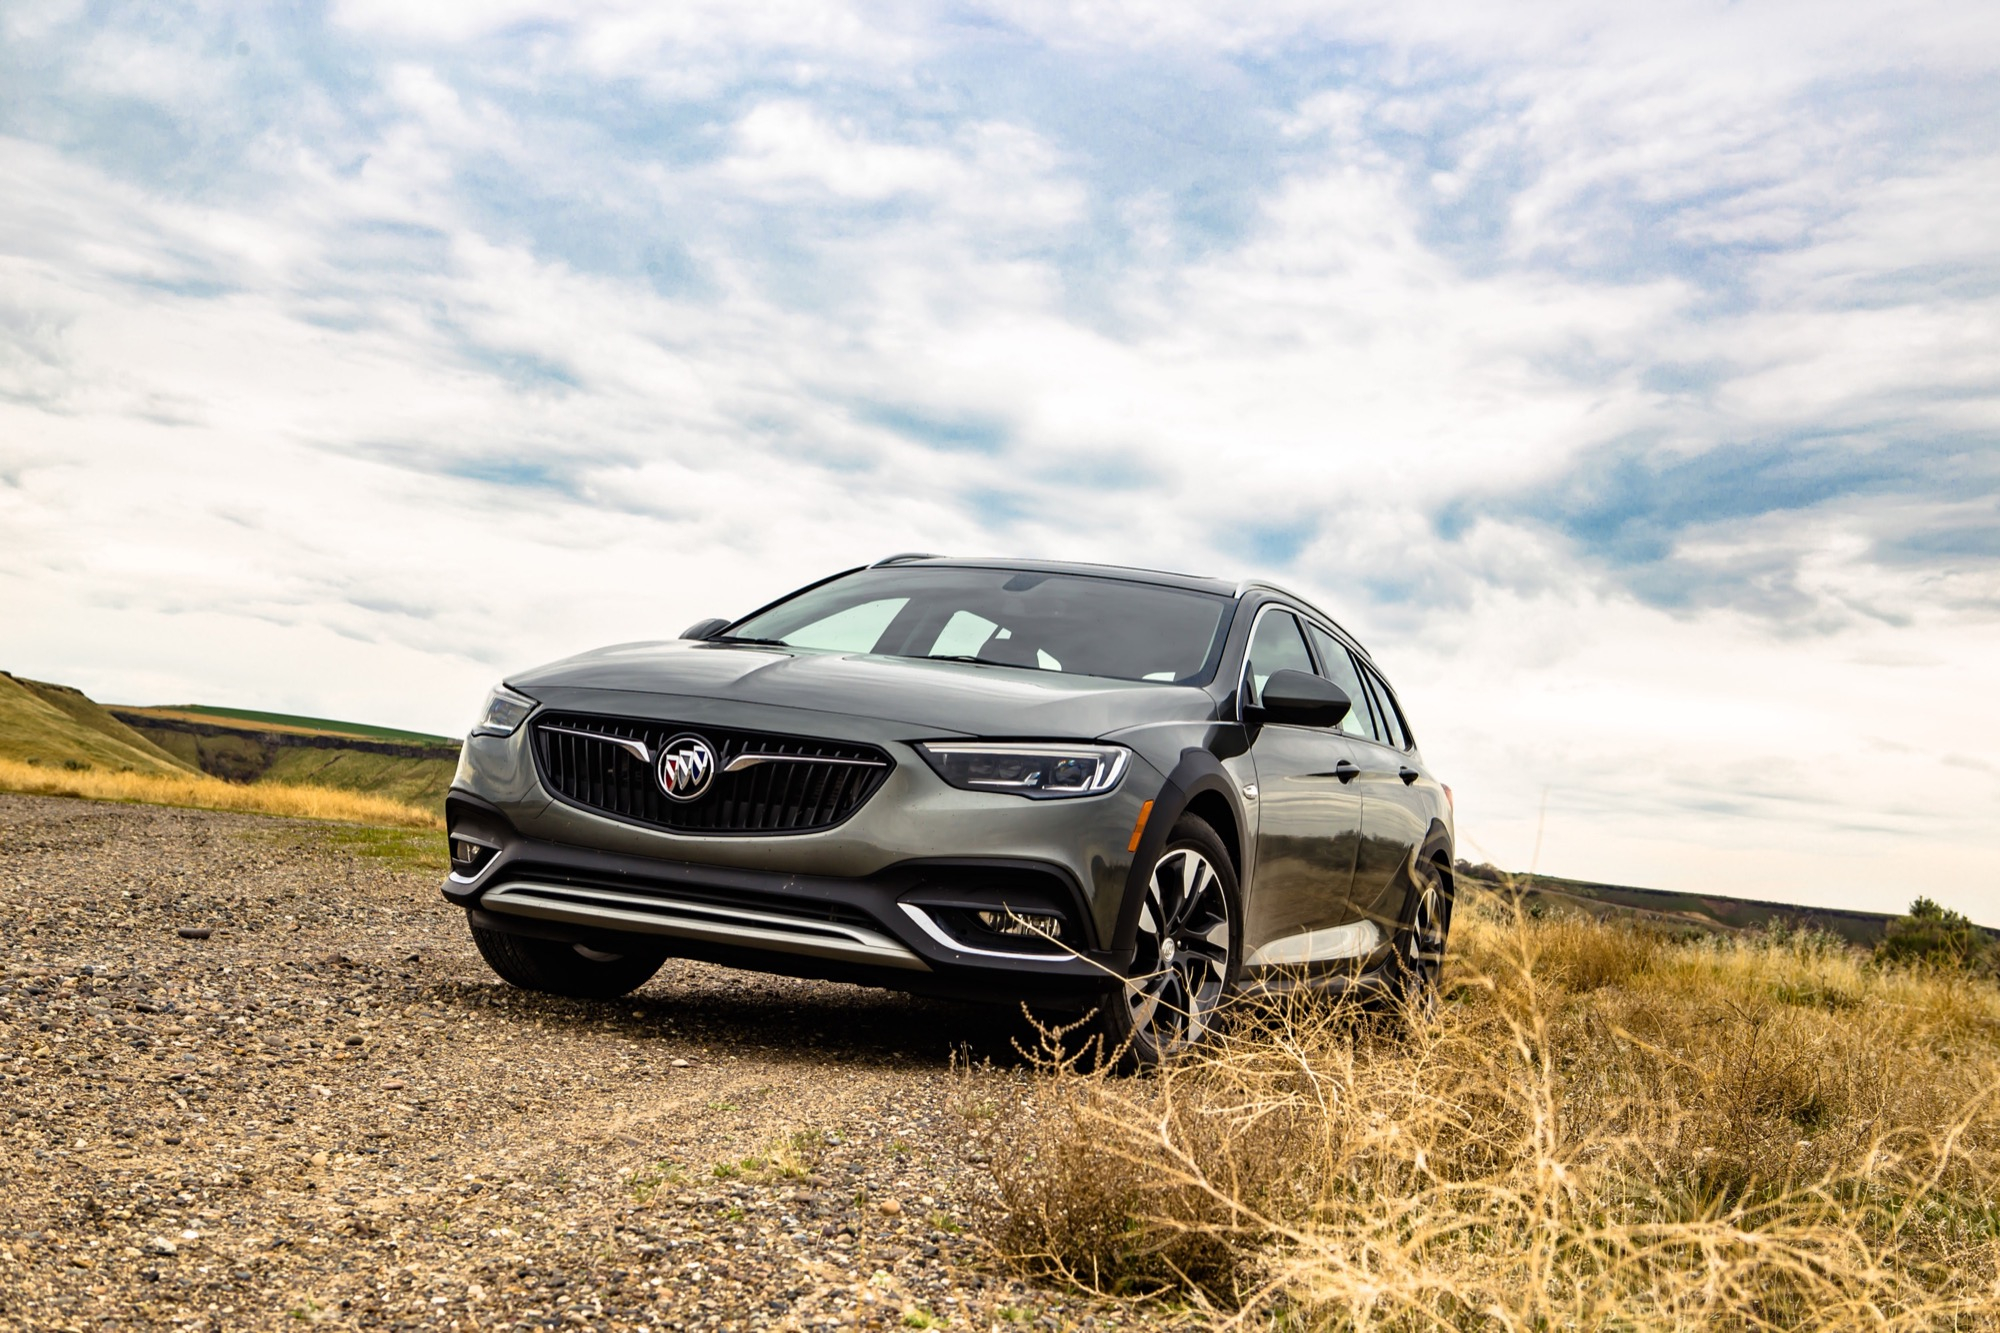 Does Buick Even Want To Sell The Regal Tourx? | Gm Authority New 2022 Buick Regal Tourx Accessories, Changes, Release Date